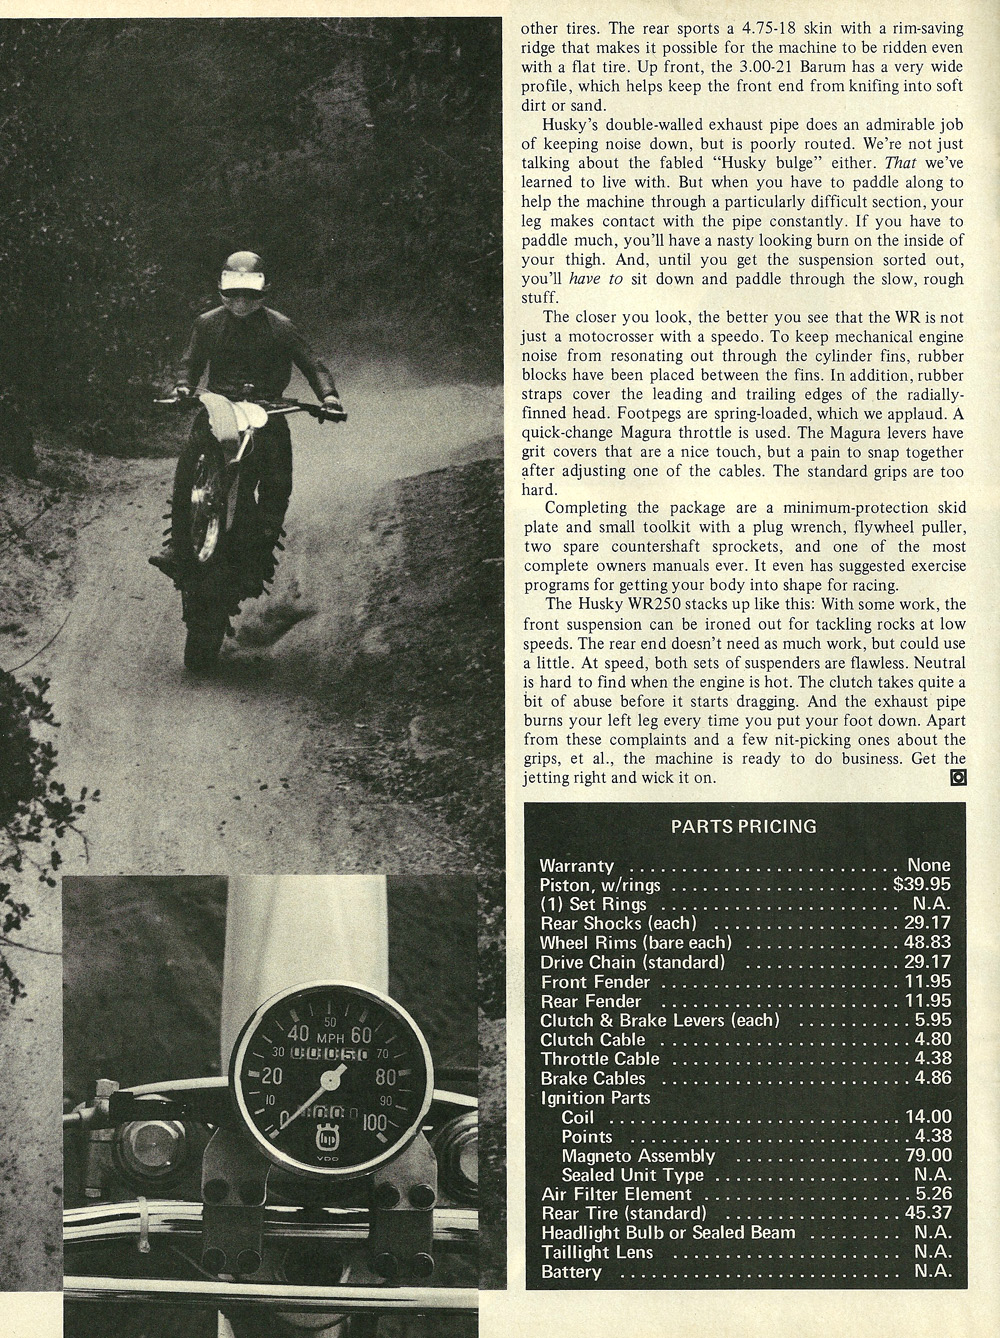 1976 Husqvarna 250WR road test 06.jpg